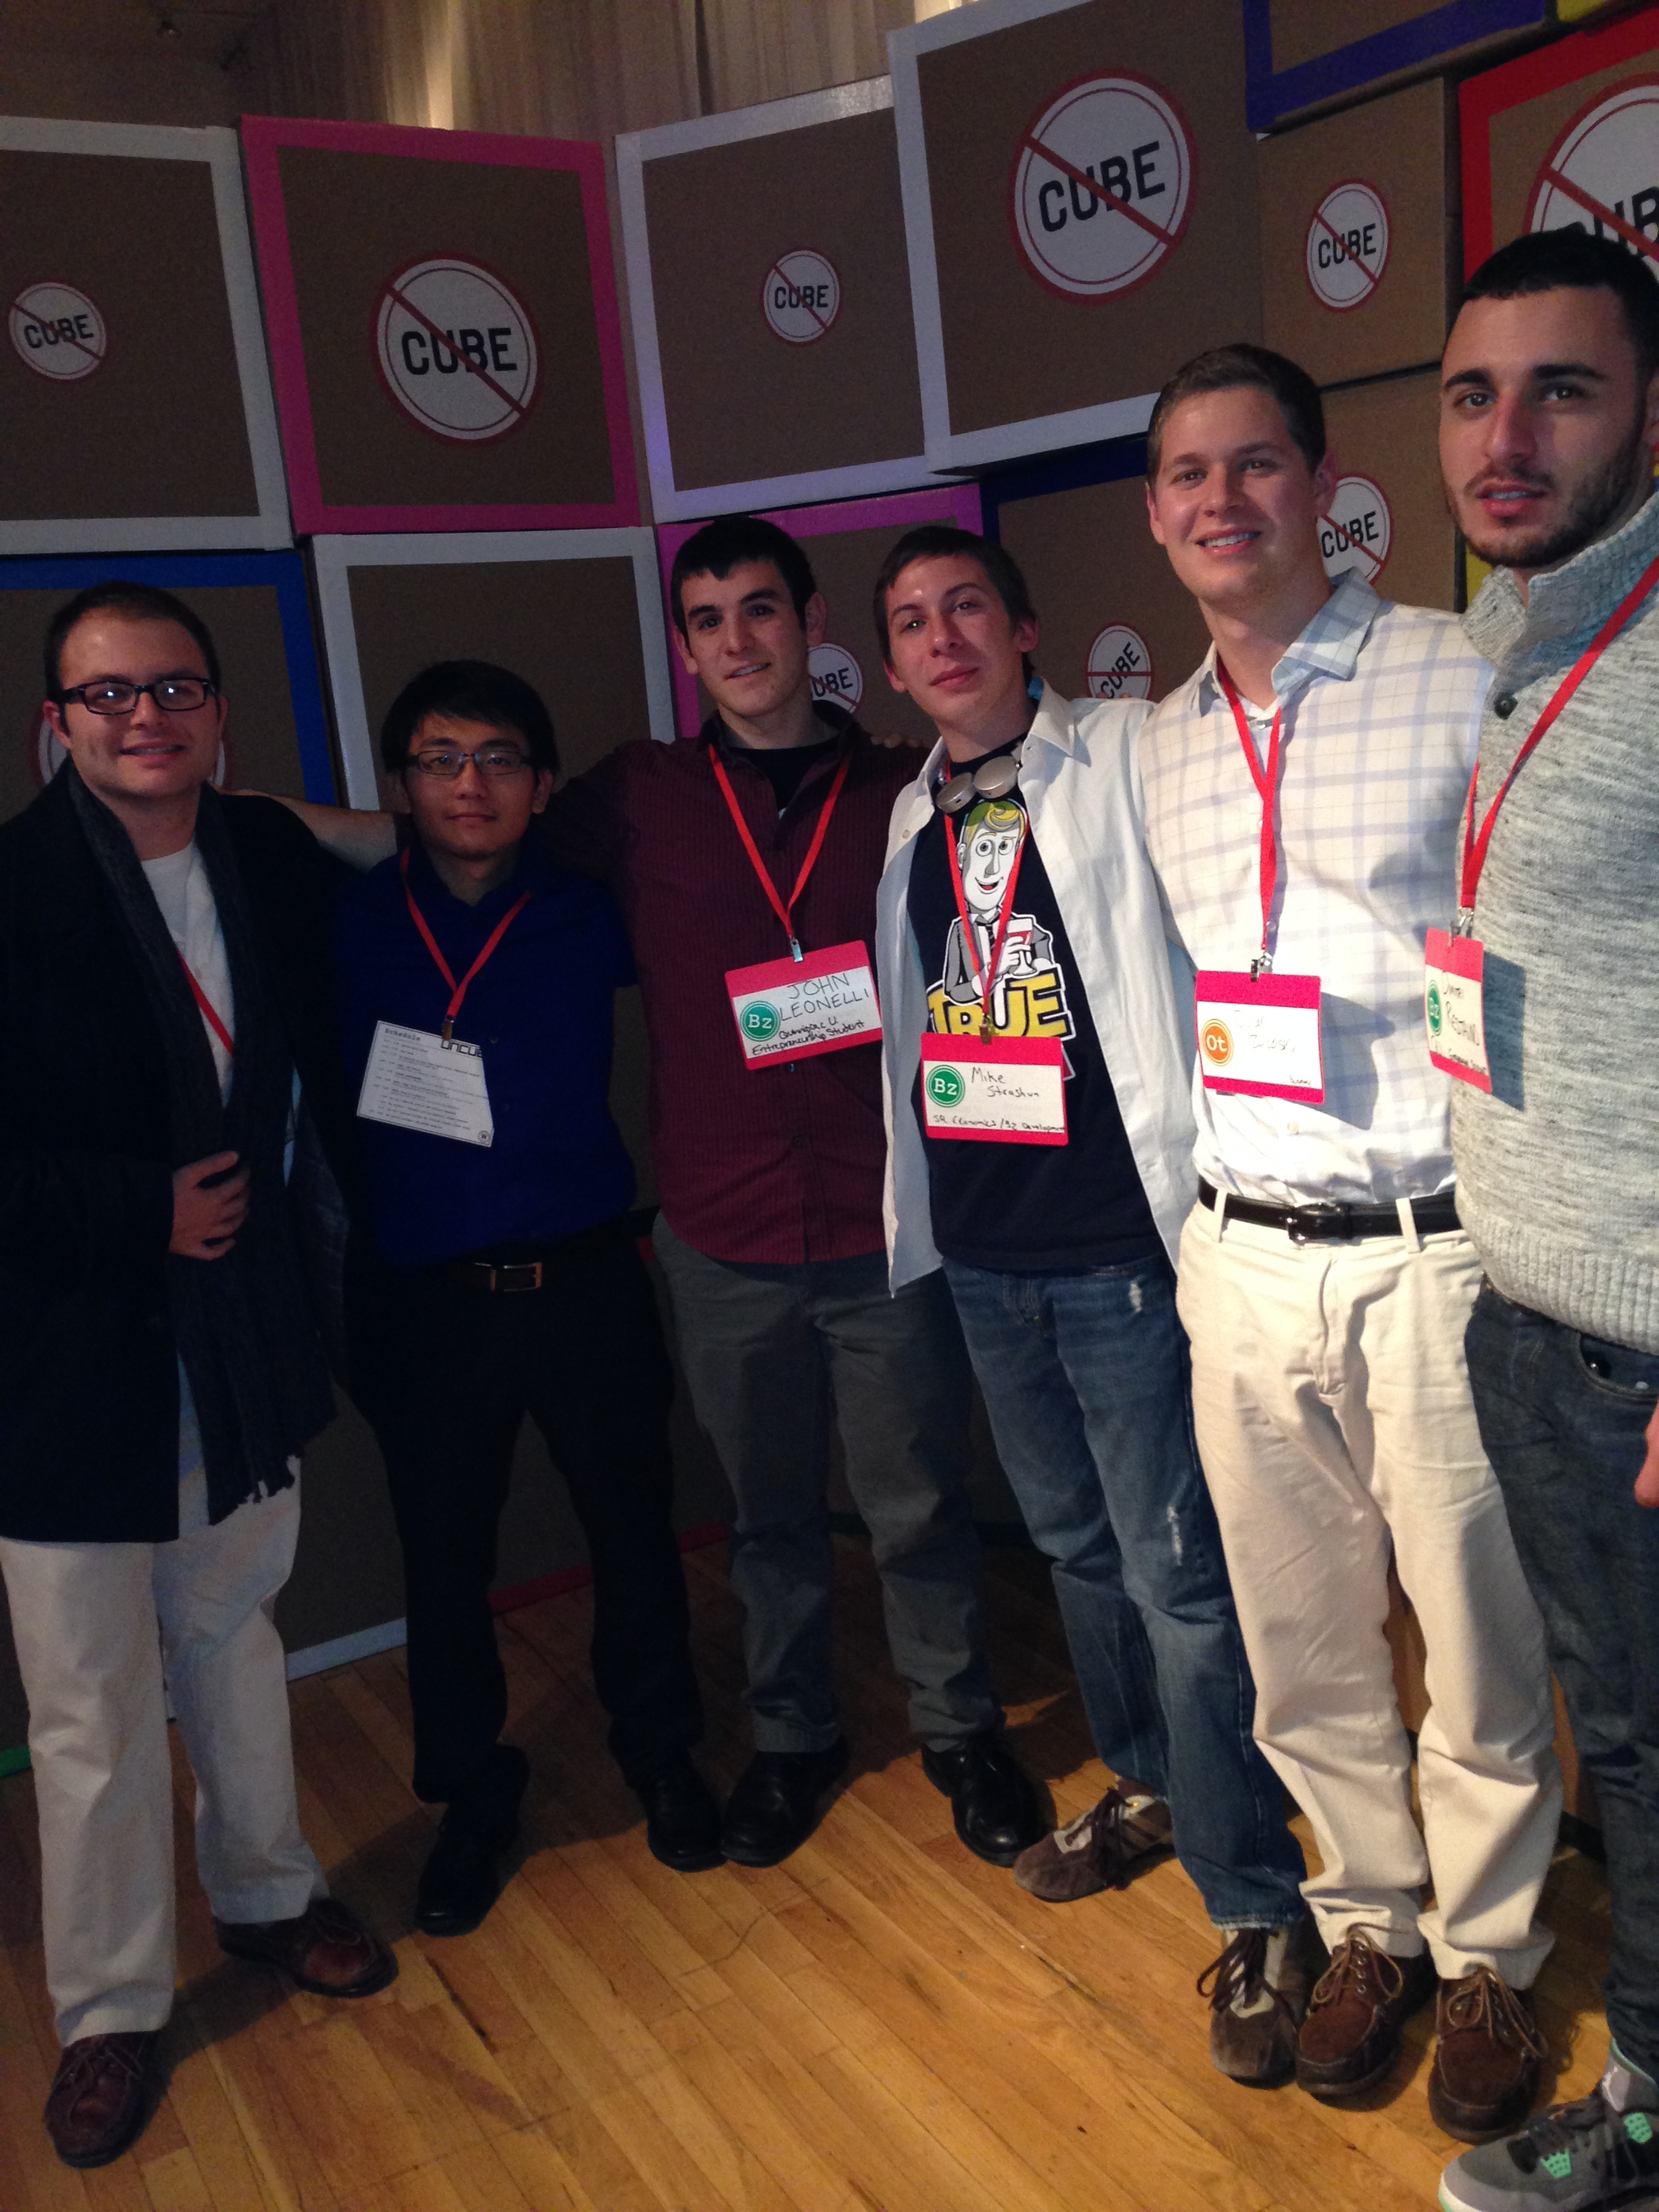 ... , and his fellow entrepreneur classmates, attended Uncubed in NYC